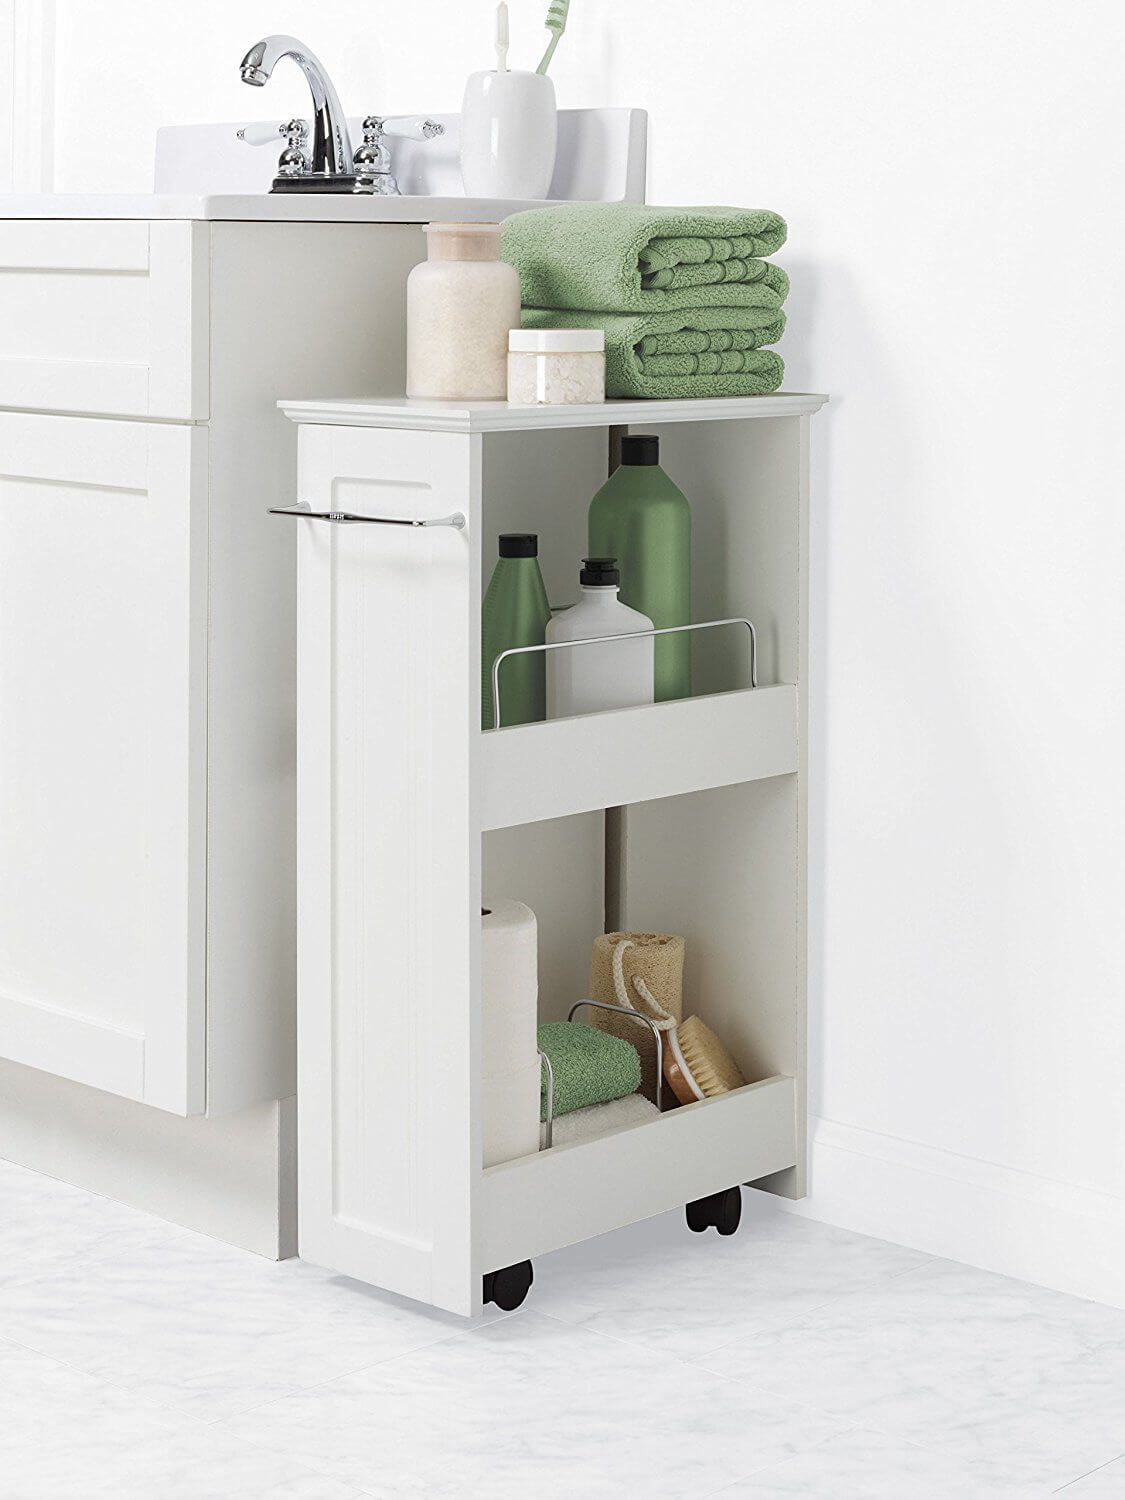 26 Best Bathroom Storage Cabinet Ideas For 2019 within proportions 1125 X 1500